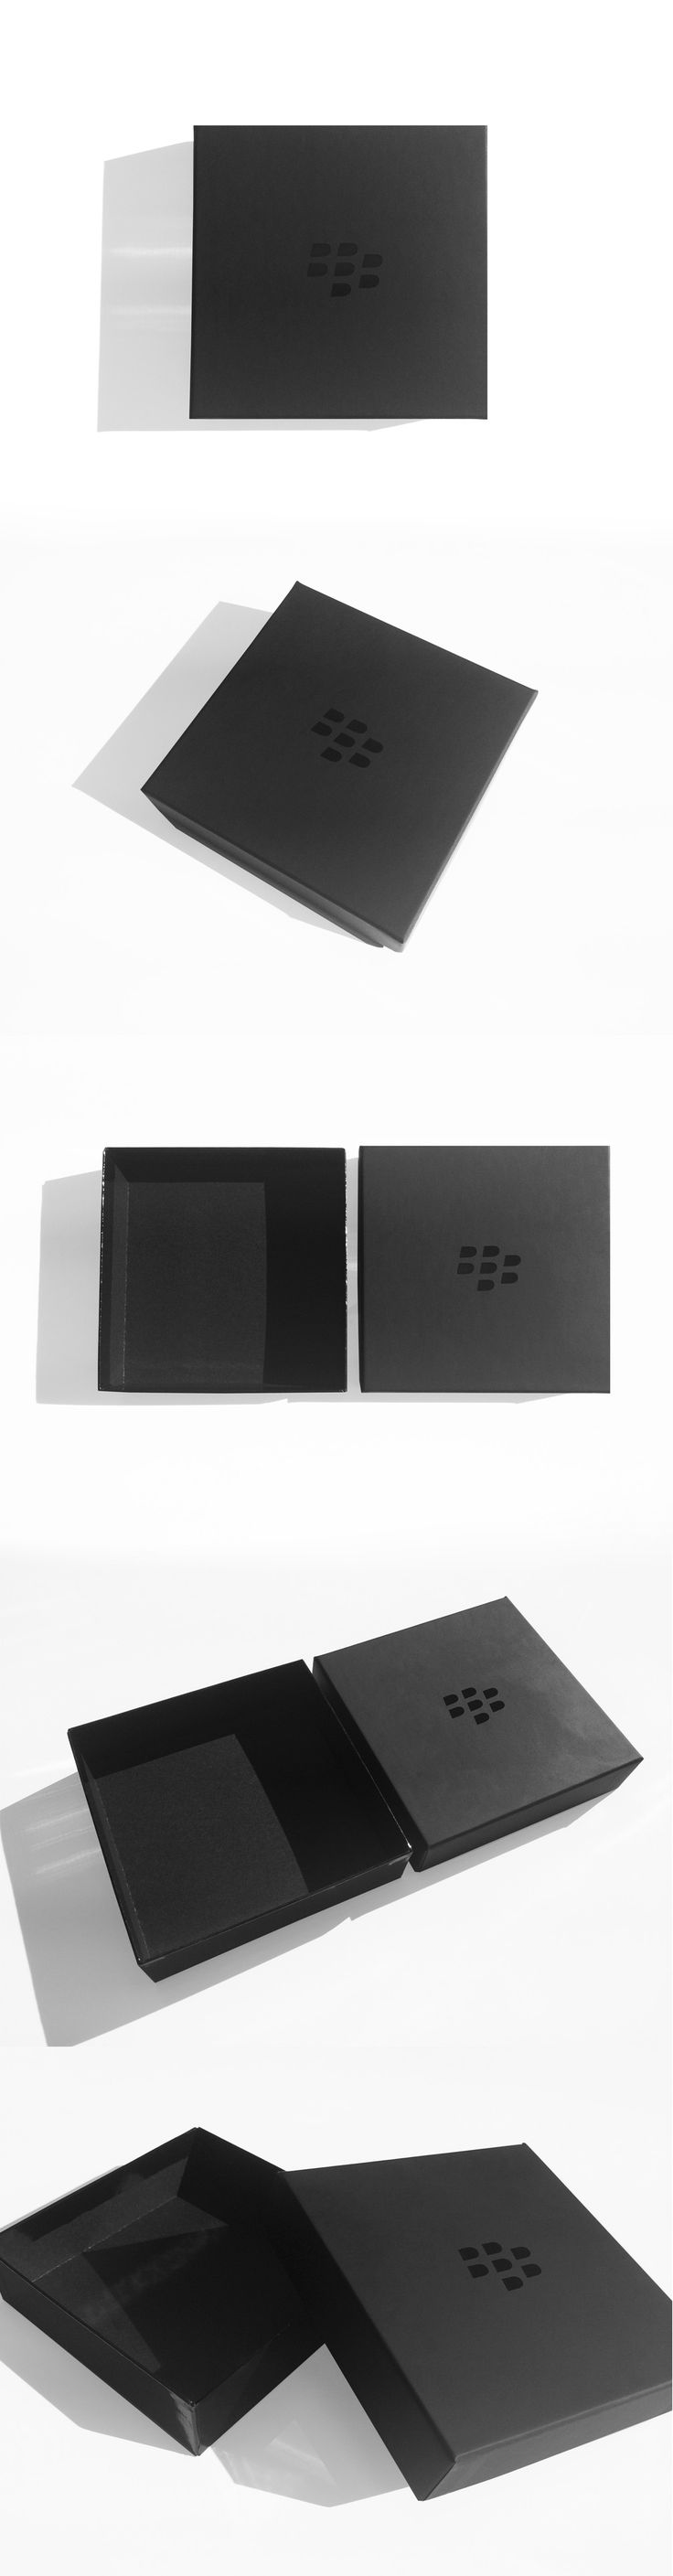 Blackberry package designed and developed by 2ii Inc